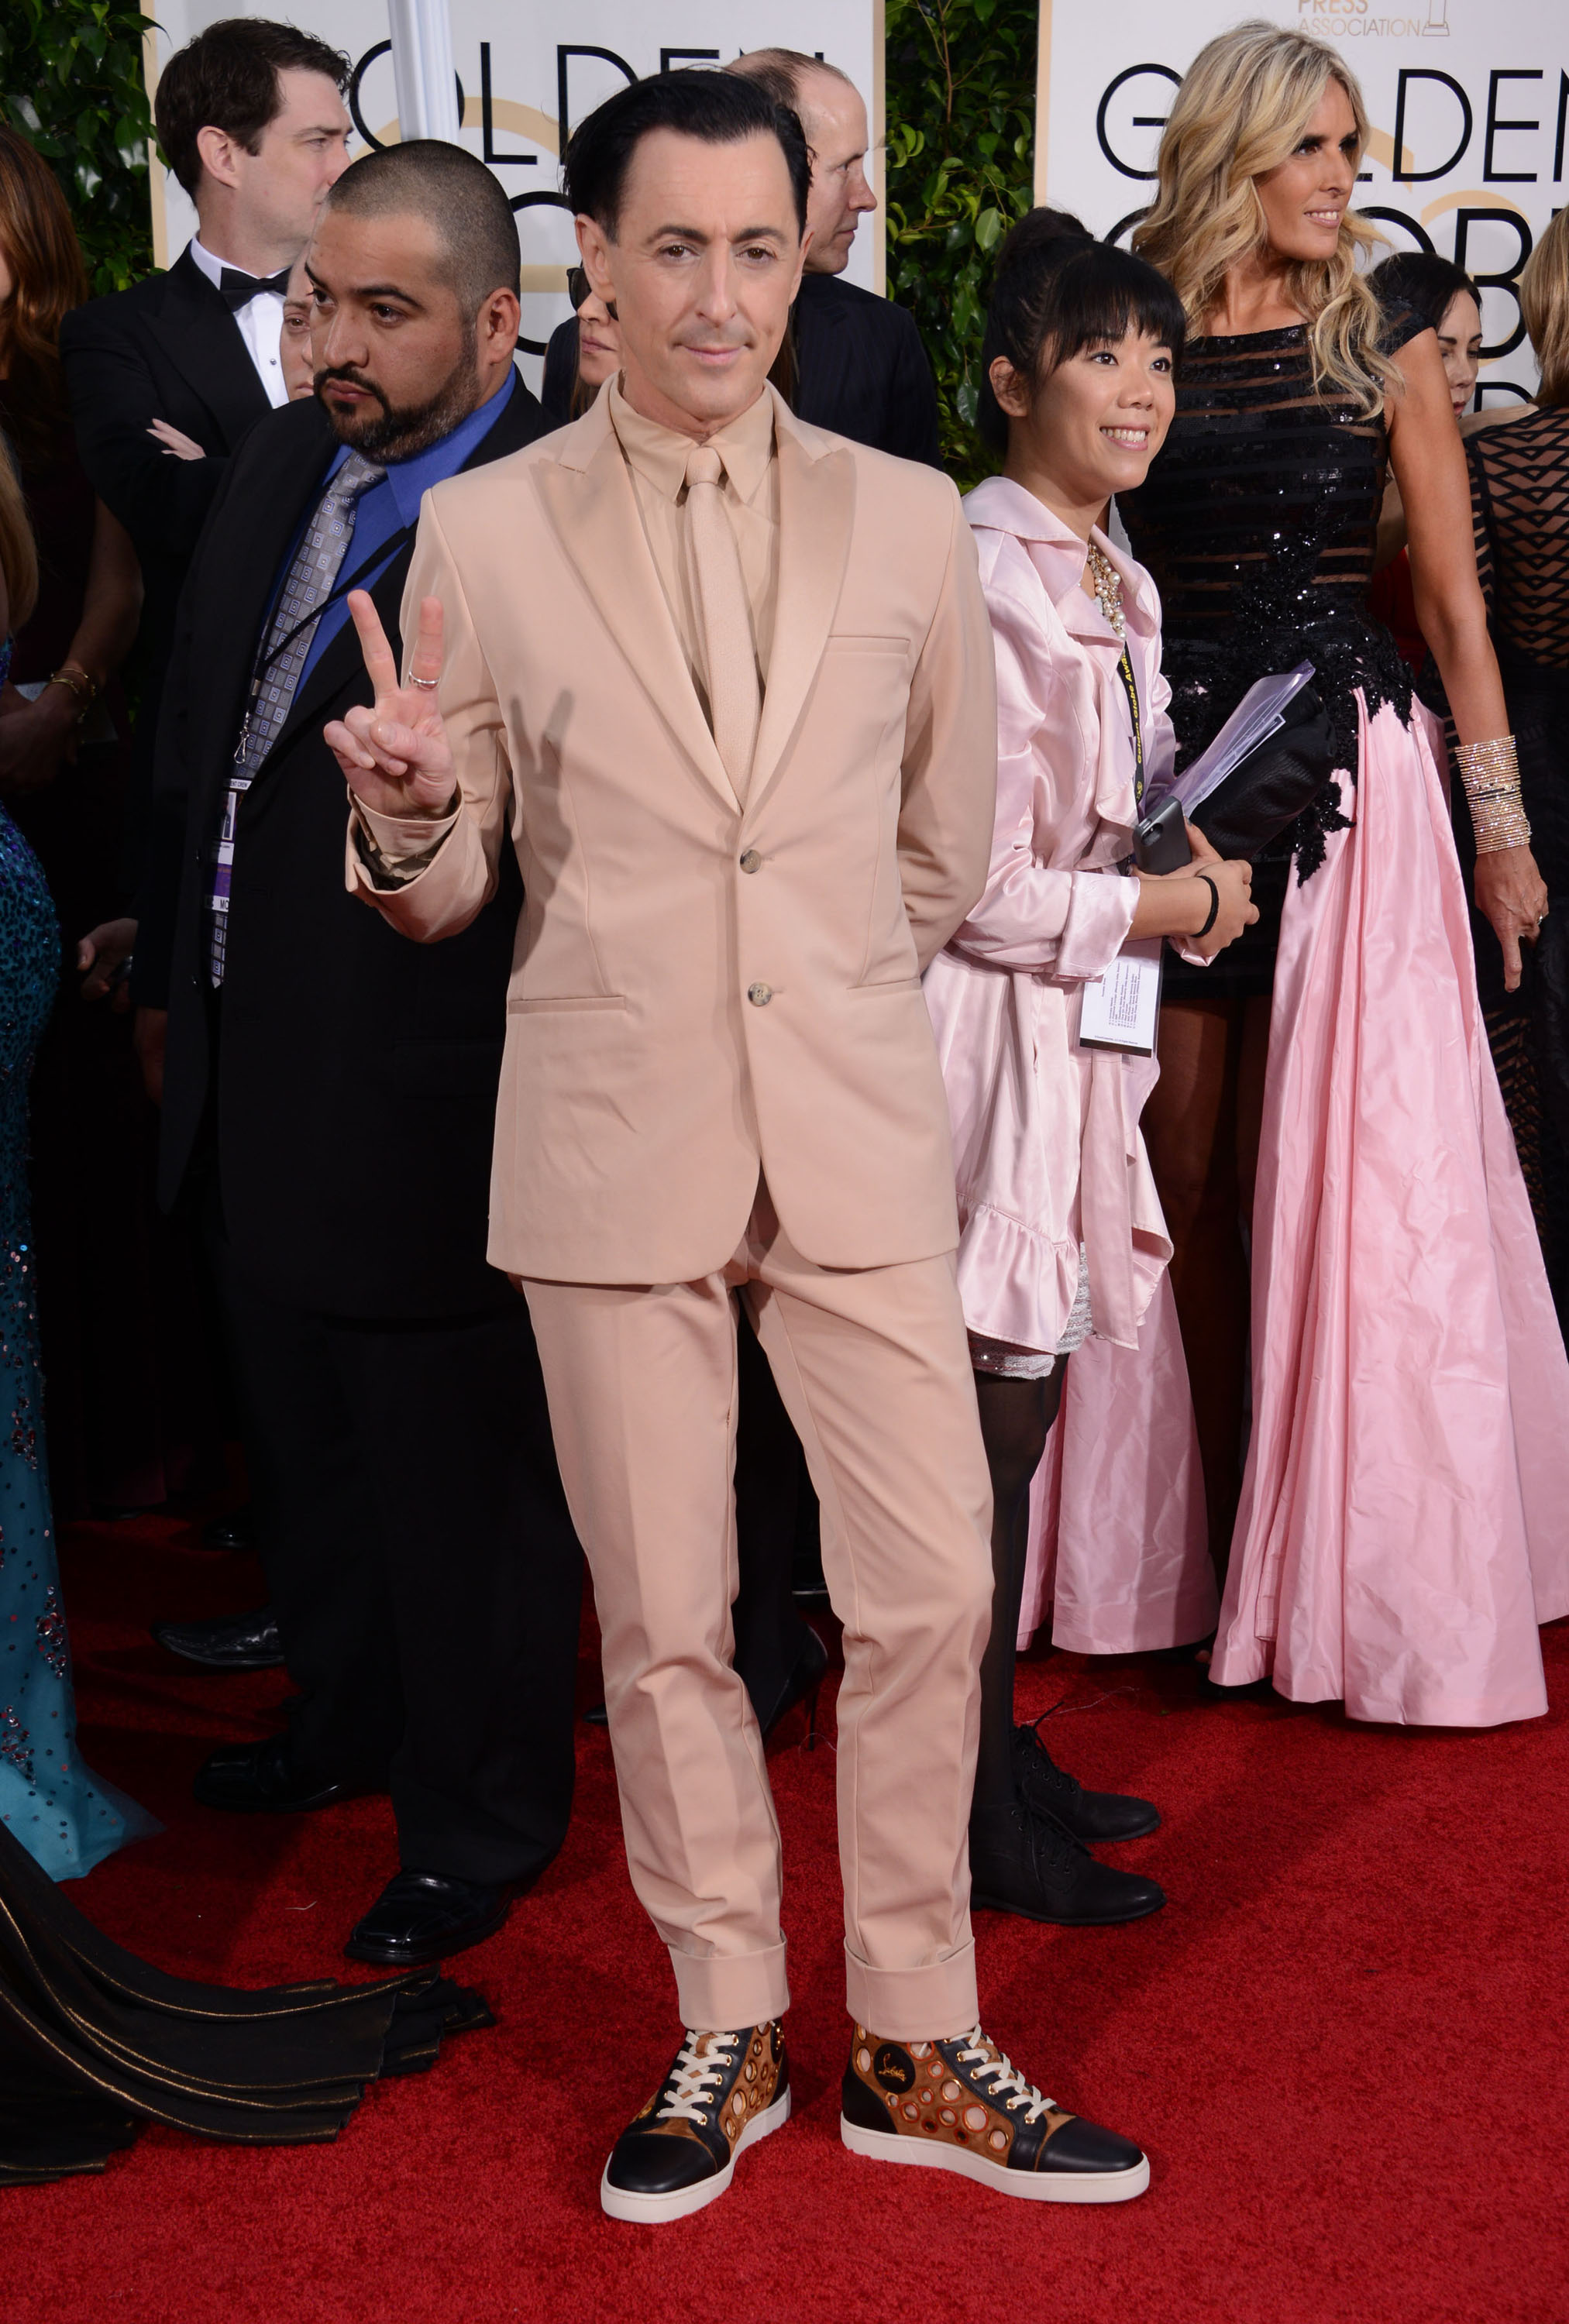 Golden Globes Alan Cumming Carpet: Alan Cumming